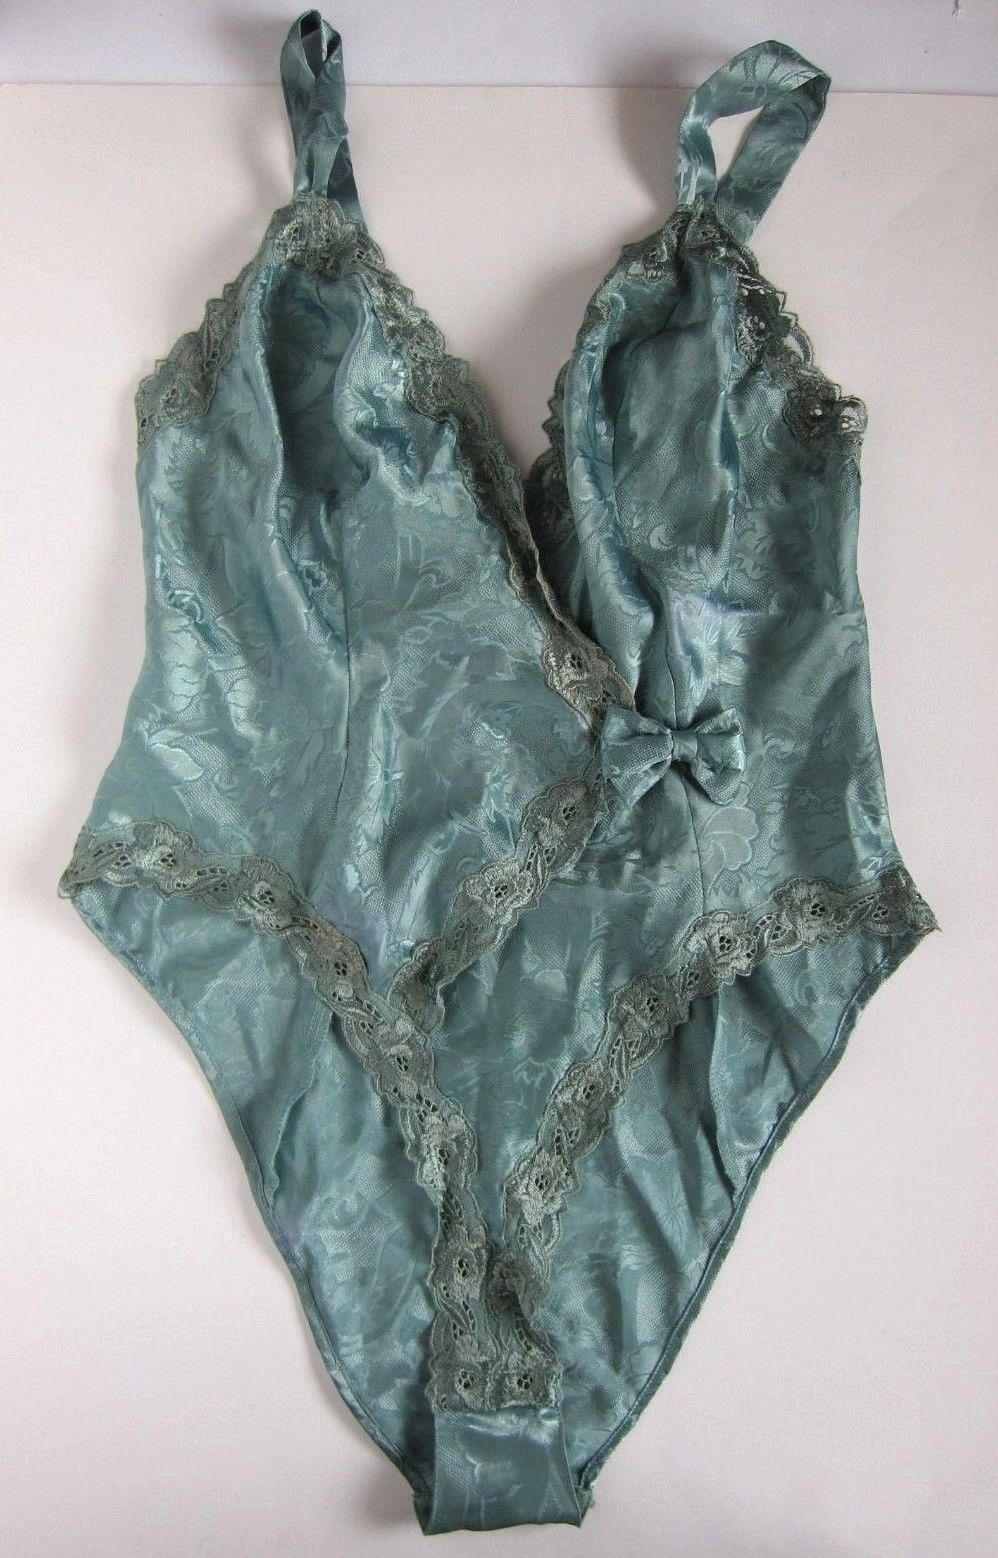 b6d62ab15b78 NWT Victoria's Secret VINTAGE 80s-90s High and 12 similar items